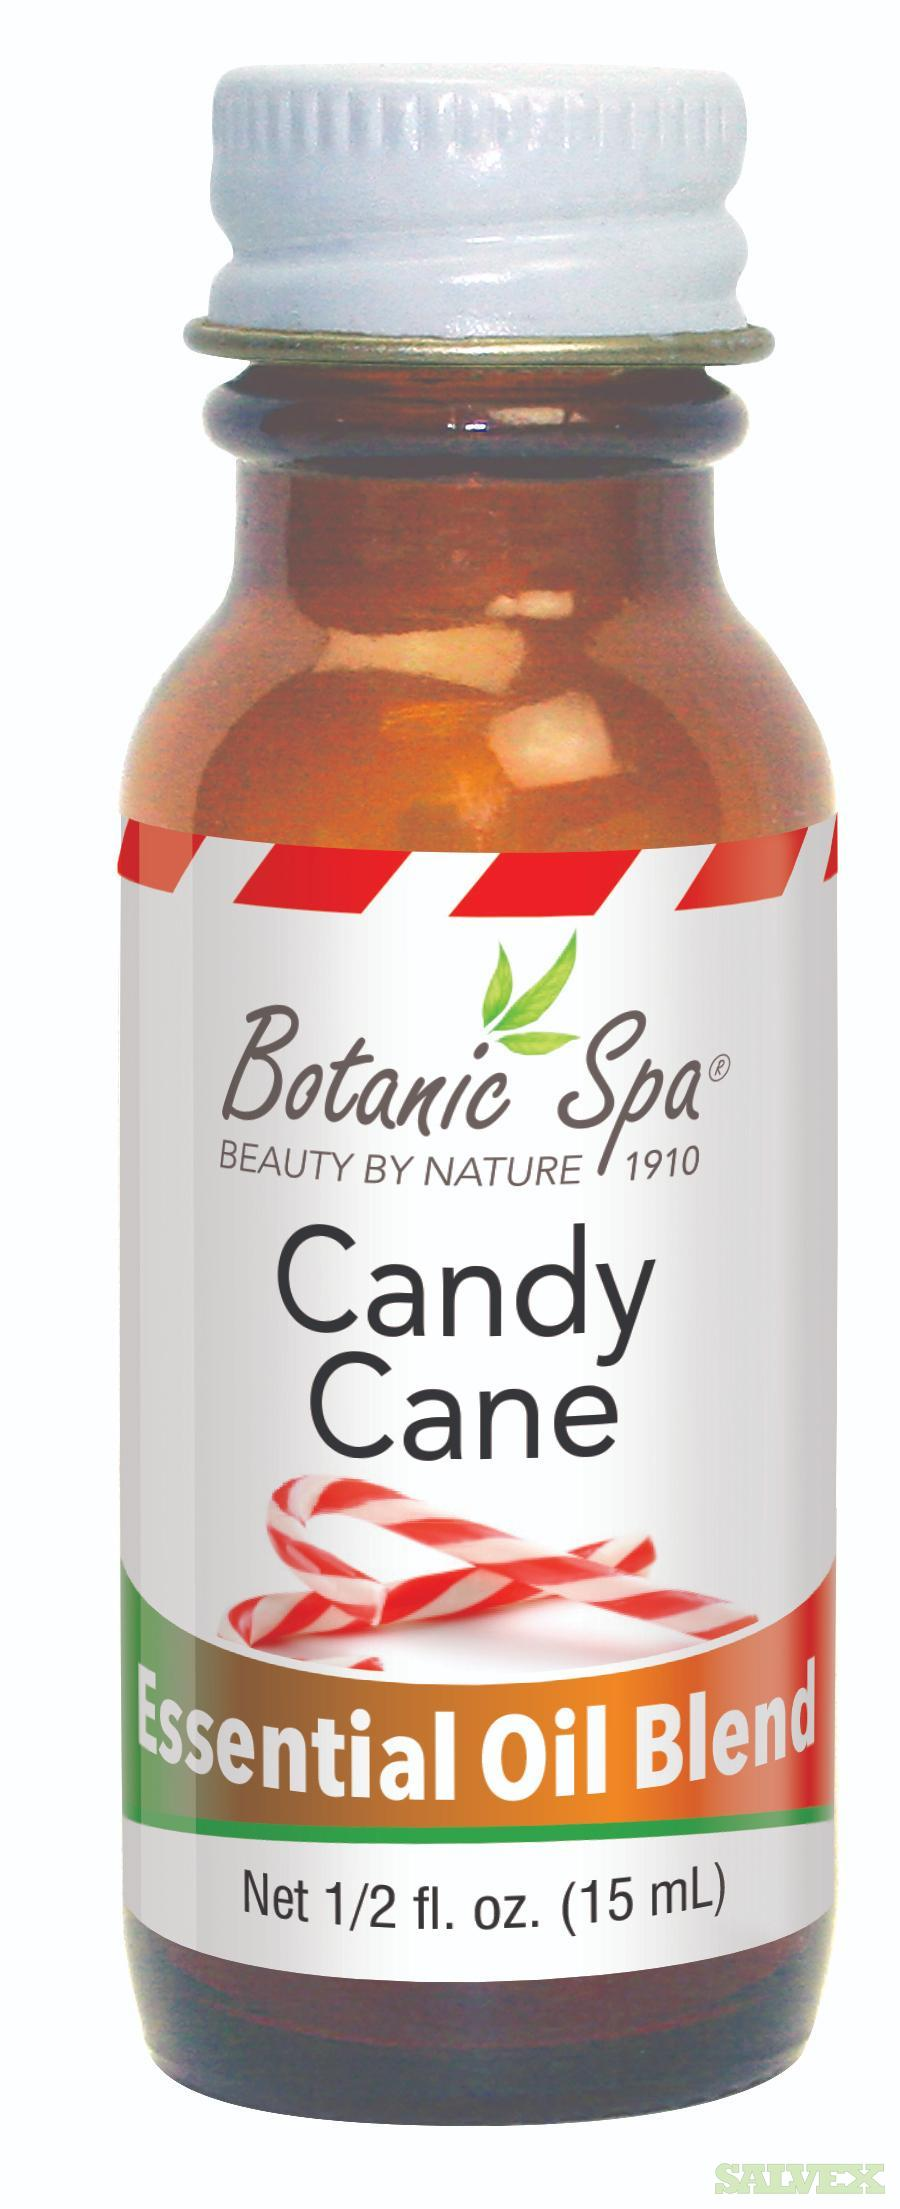 Botanic Spa Candy Cane Essential Oil, Daily Bright & Hydrate Mist, and Daily Balancing Cleanser (570 Bottles)